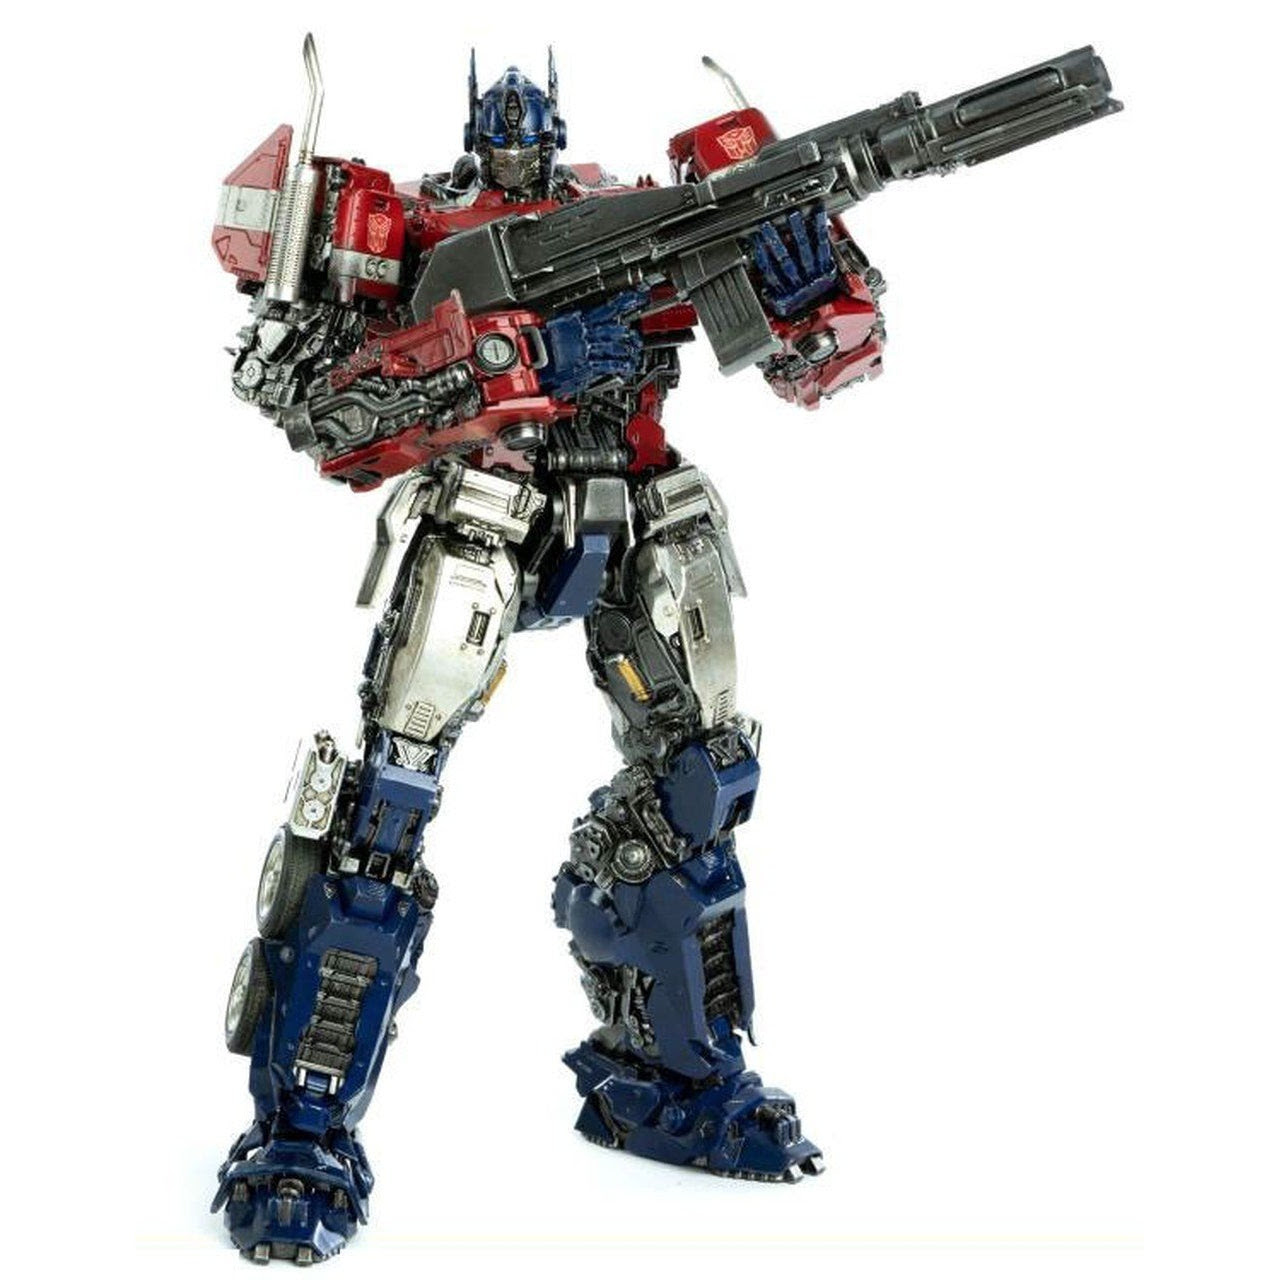 Image of Transformers Bumblebee Movie Optimus Prime Deluxe Scale Action Figure - JANUARY 2020